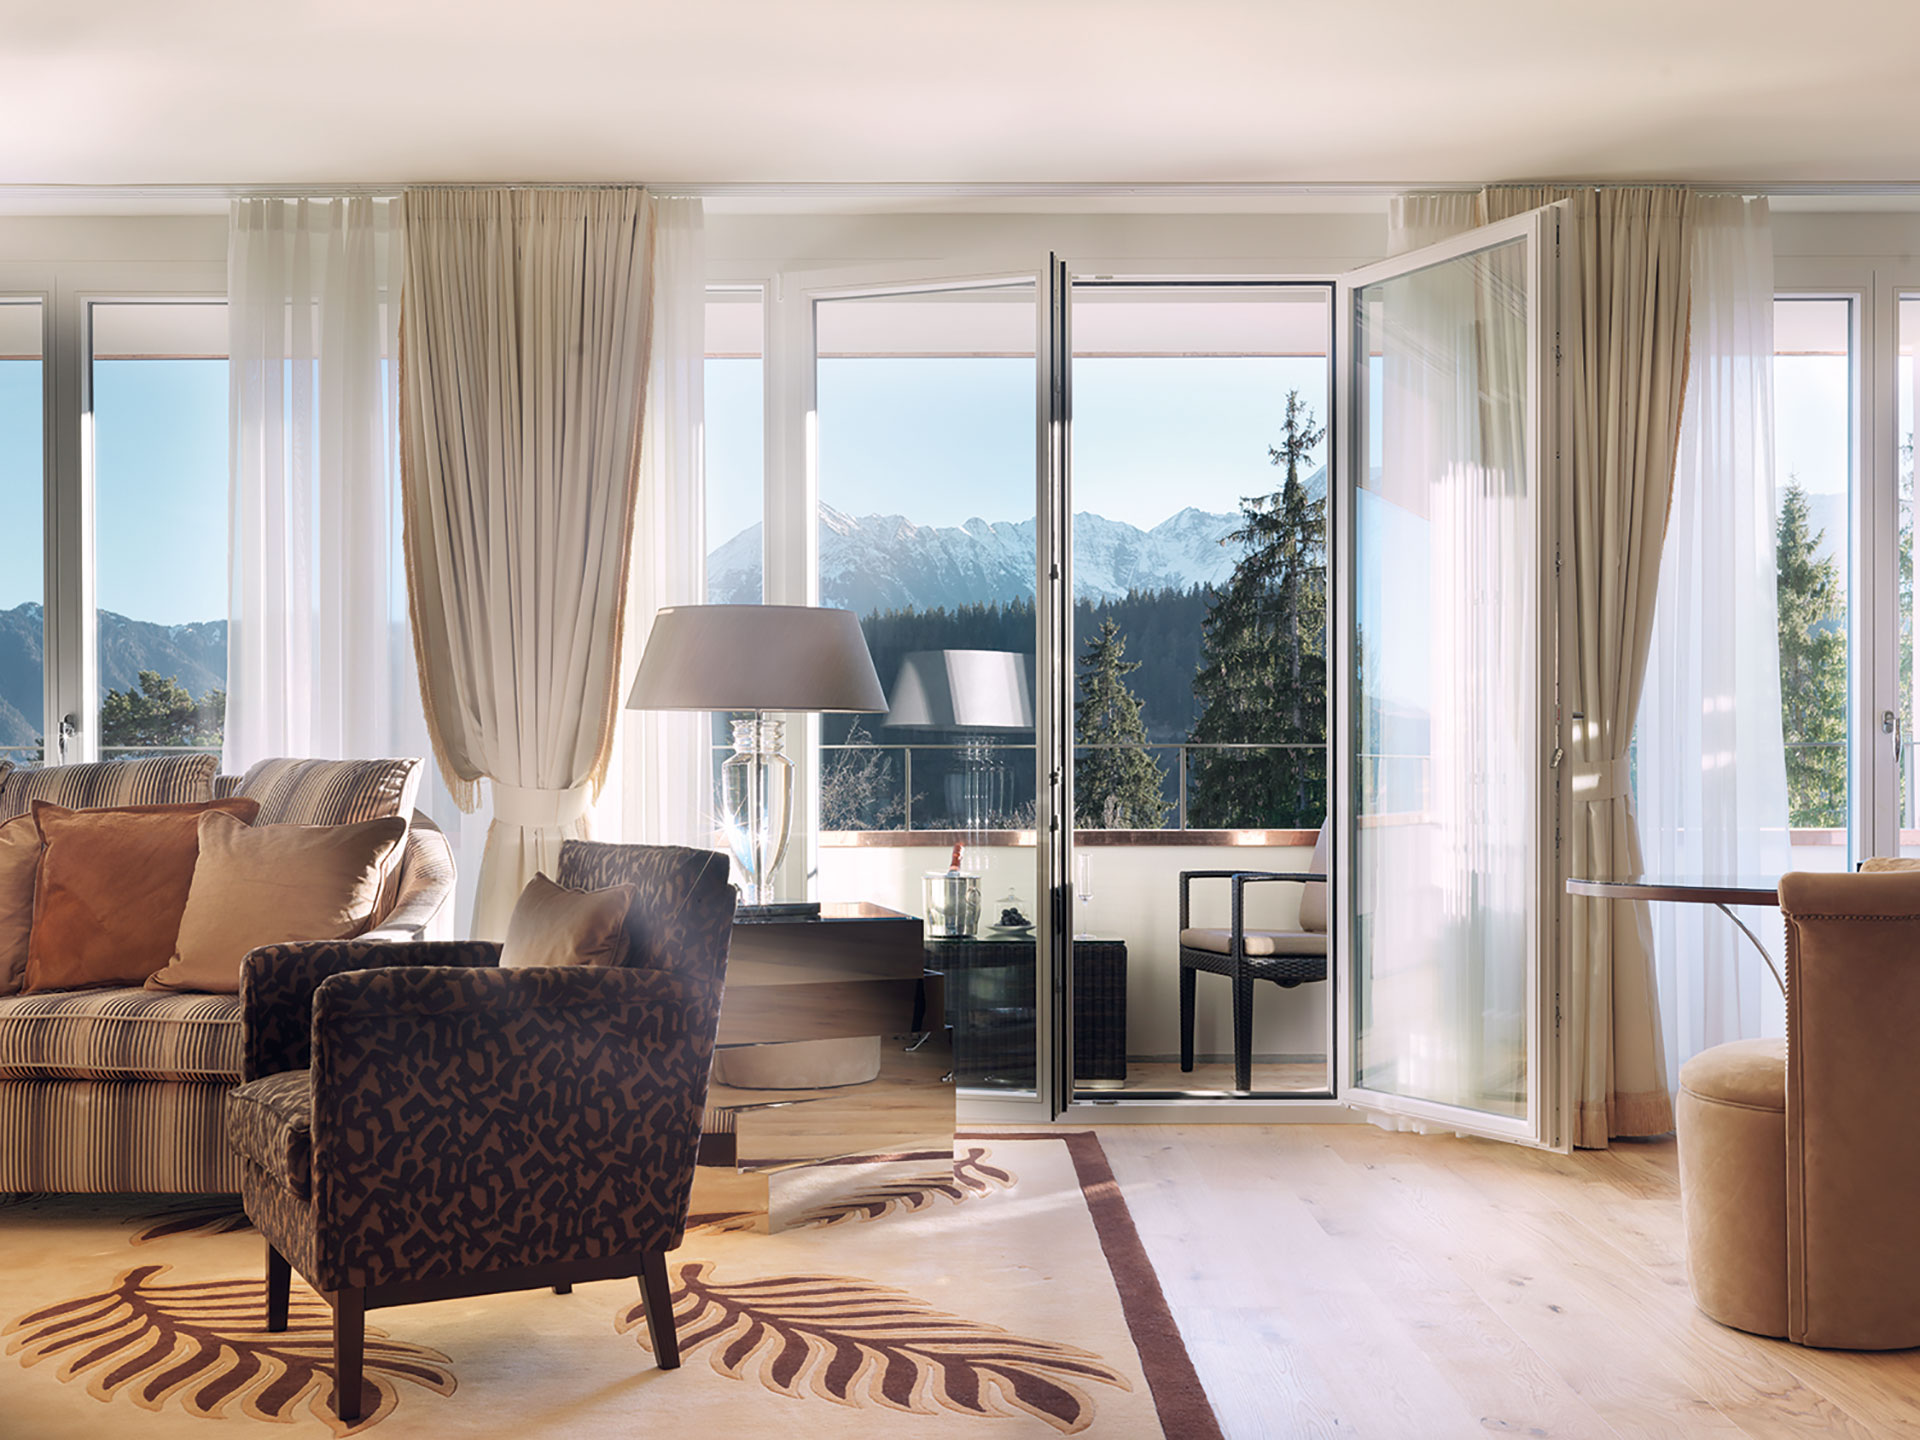 an interior shot of a sitting room in a suite. There is a striped couch and black and brown patterned chair in the corner of the room. The are glass doors leading out onto a balcony overlooking the evergreen trees and the tops of the swiss alps.